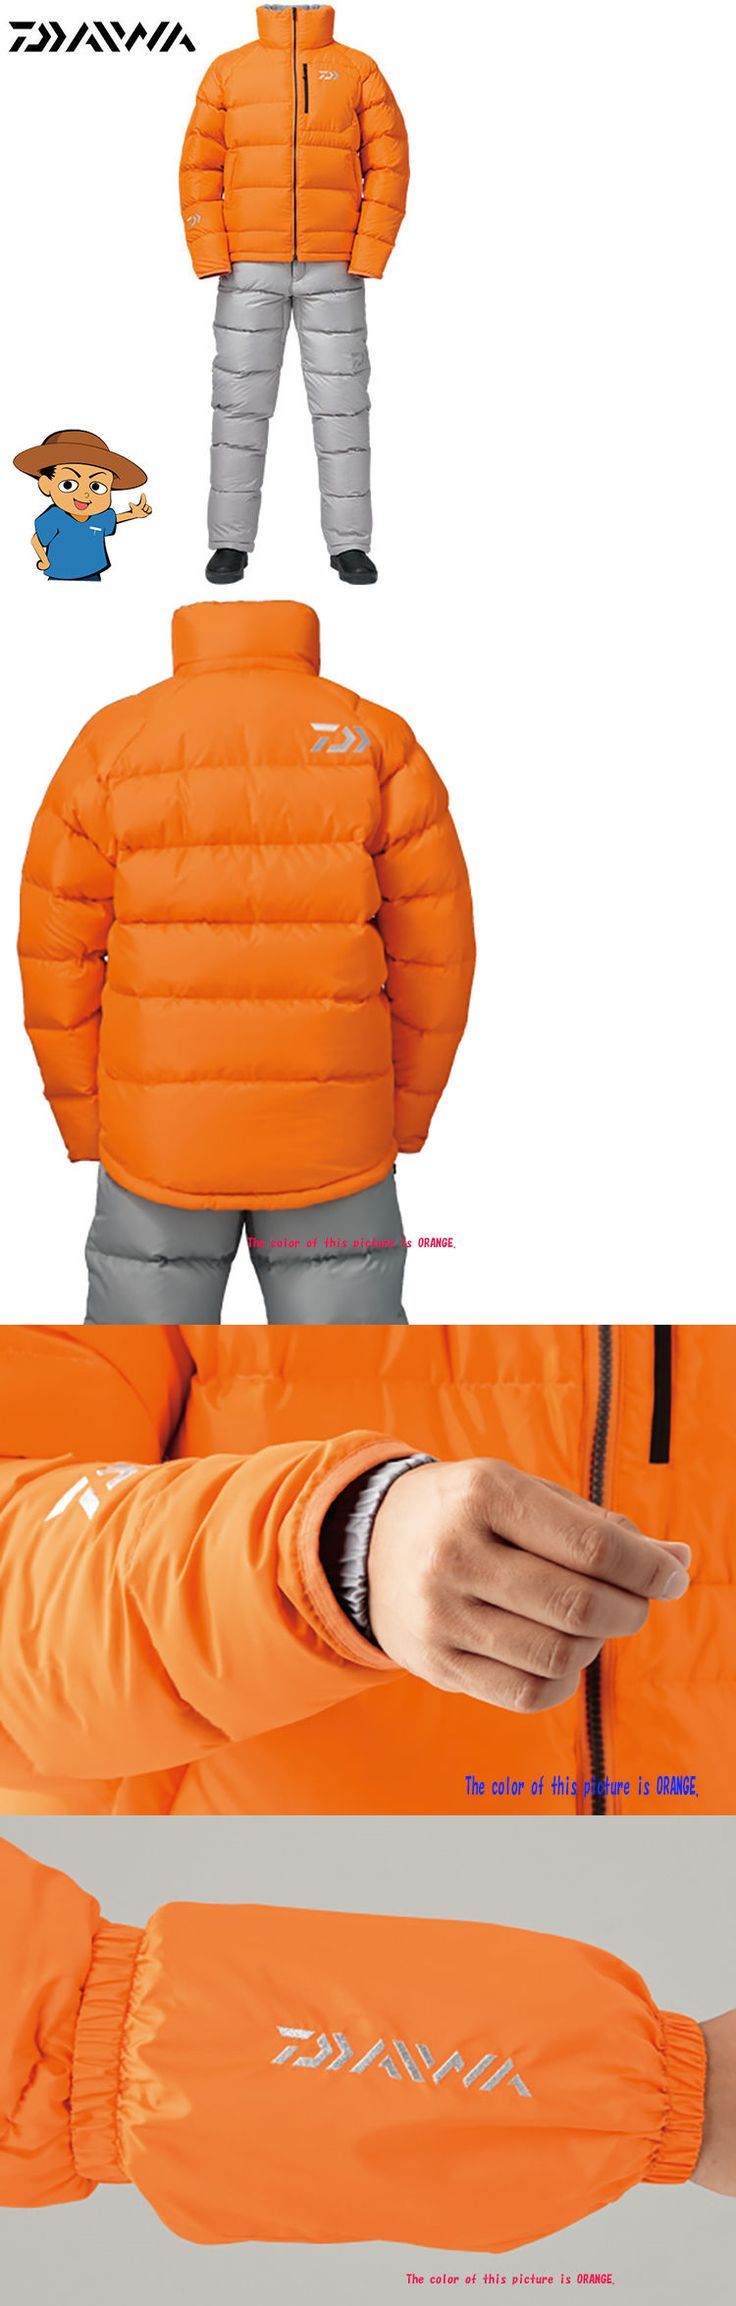 Jacket and Pants Sets 179981: Daiwa Di-5305 Orange Fishing Outdoor Winter Dawn Jacket Snowsuit -> BUY IT NOW ONLY: $690 on eBay!